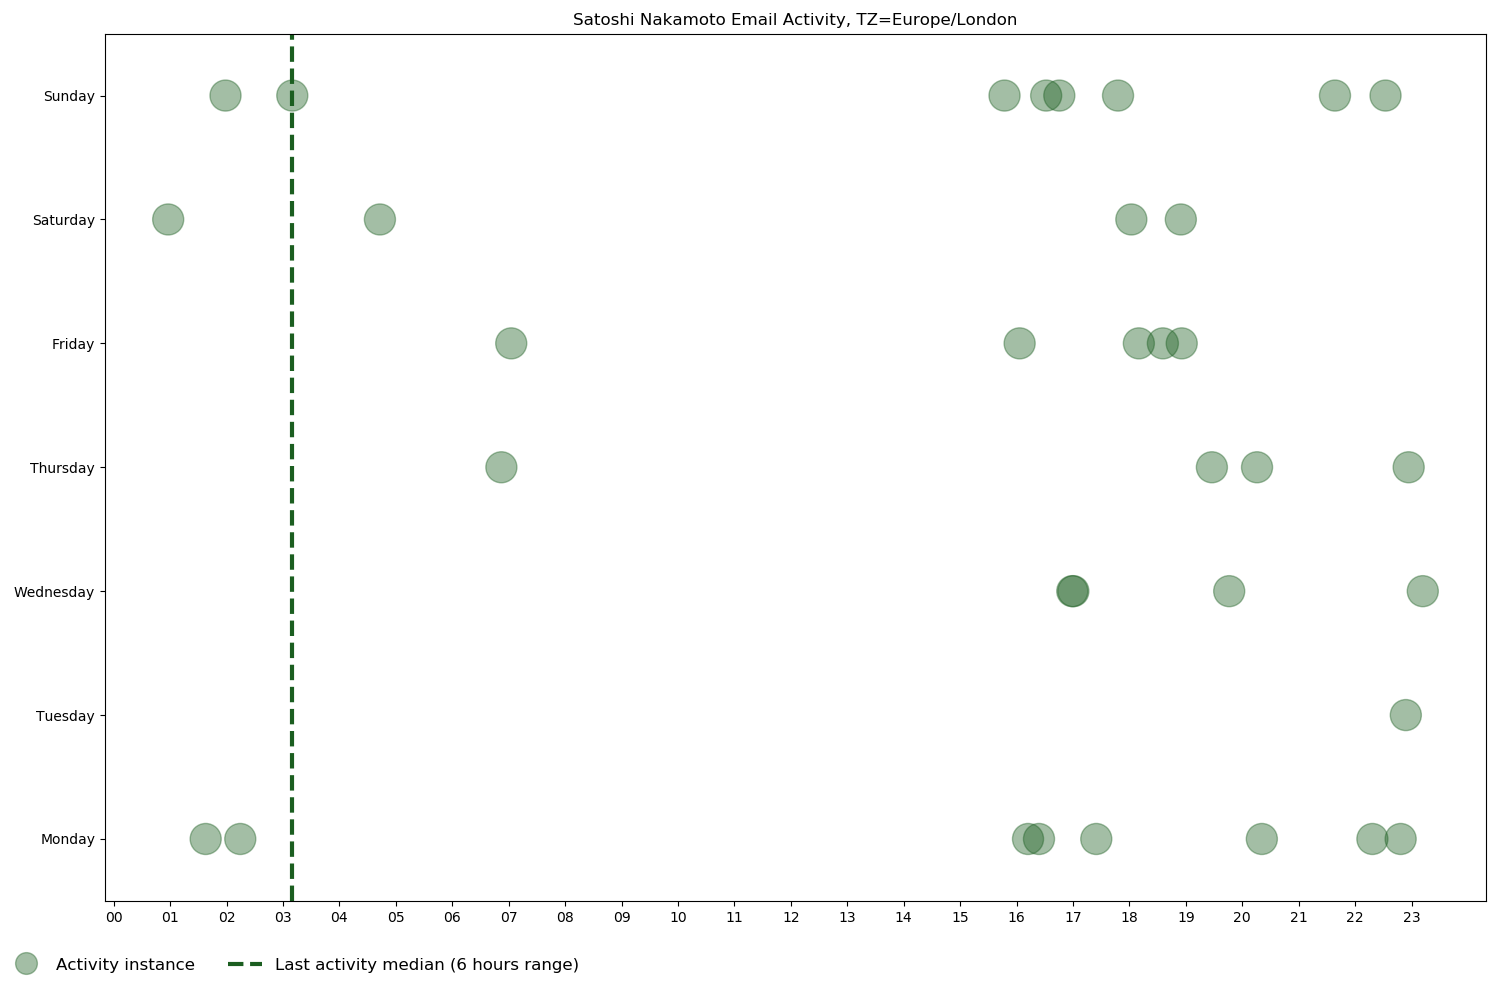 Scatter chart of Satoshi Nakamoto's email activity, from his first email on October 31, 2008 to his last one on December 13, 2010, based on day of the week and time of day in the Europe/London time zone.